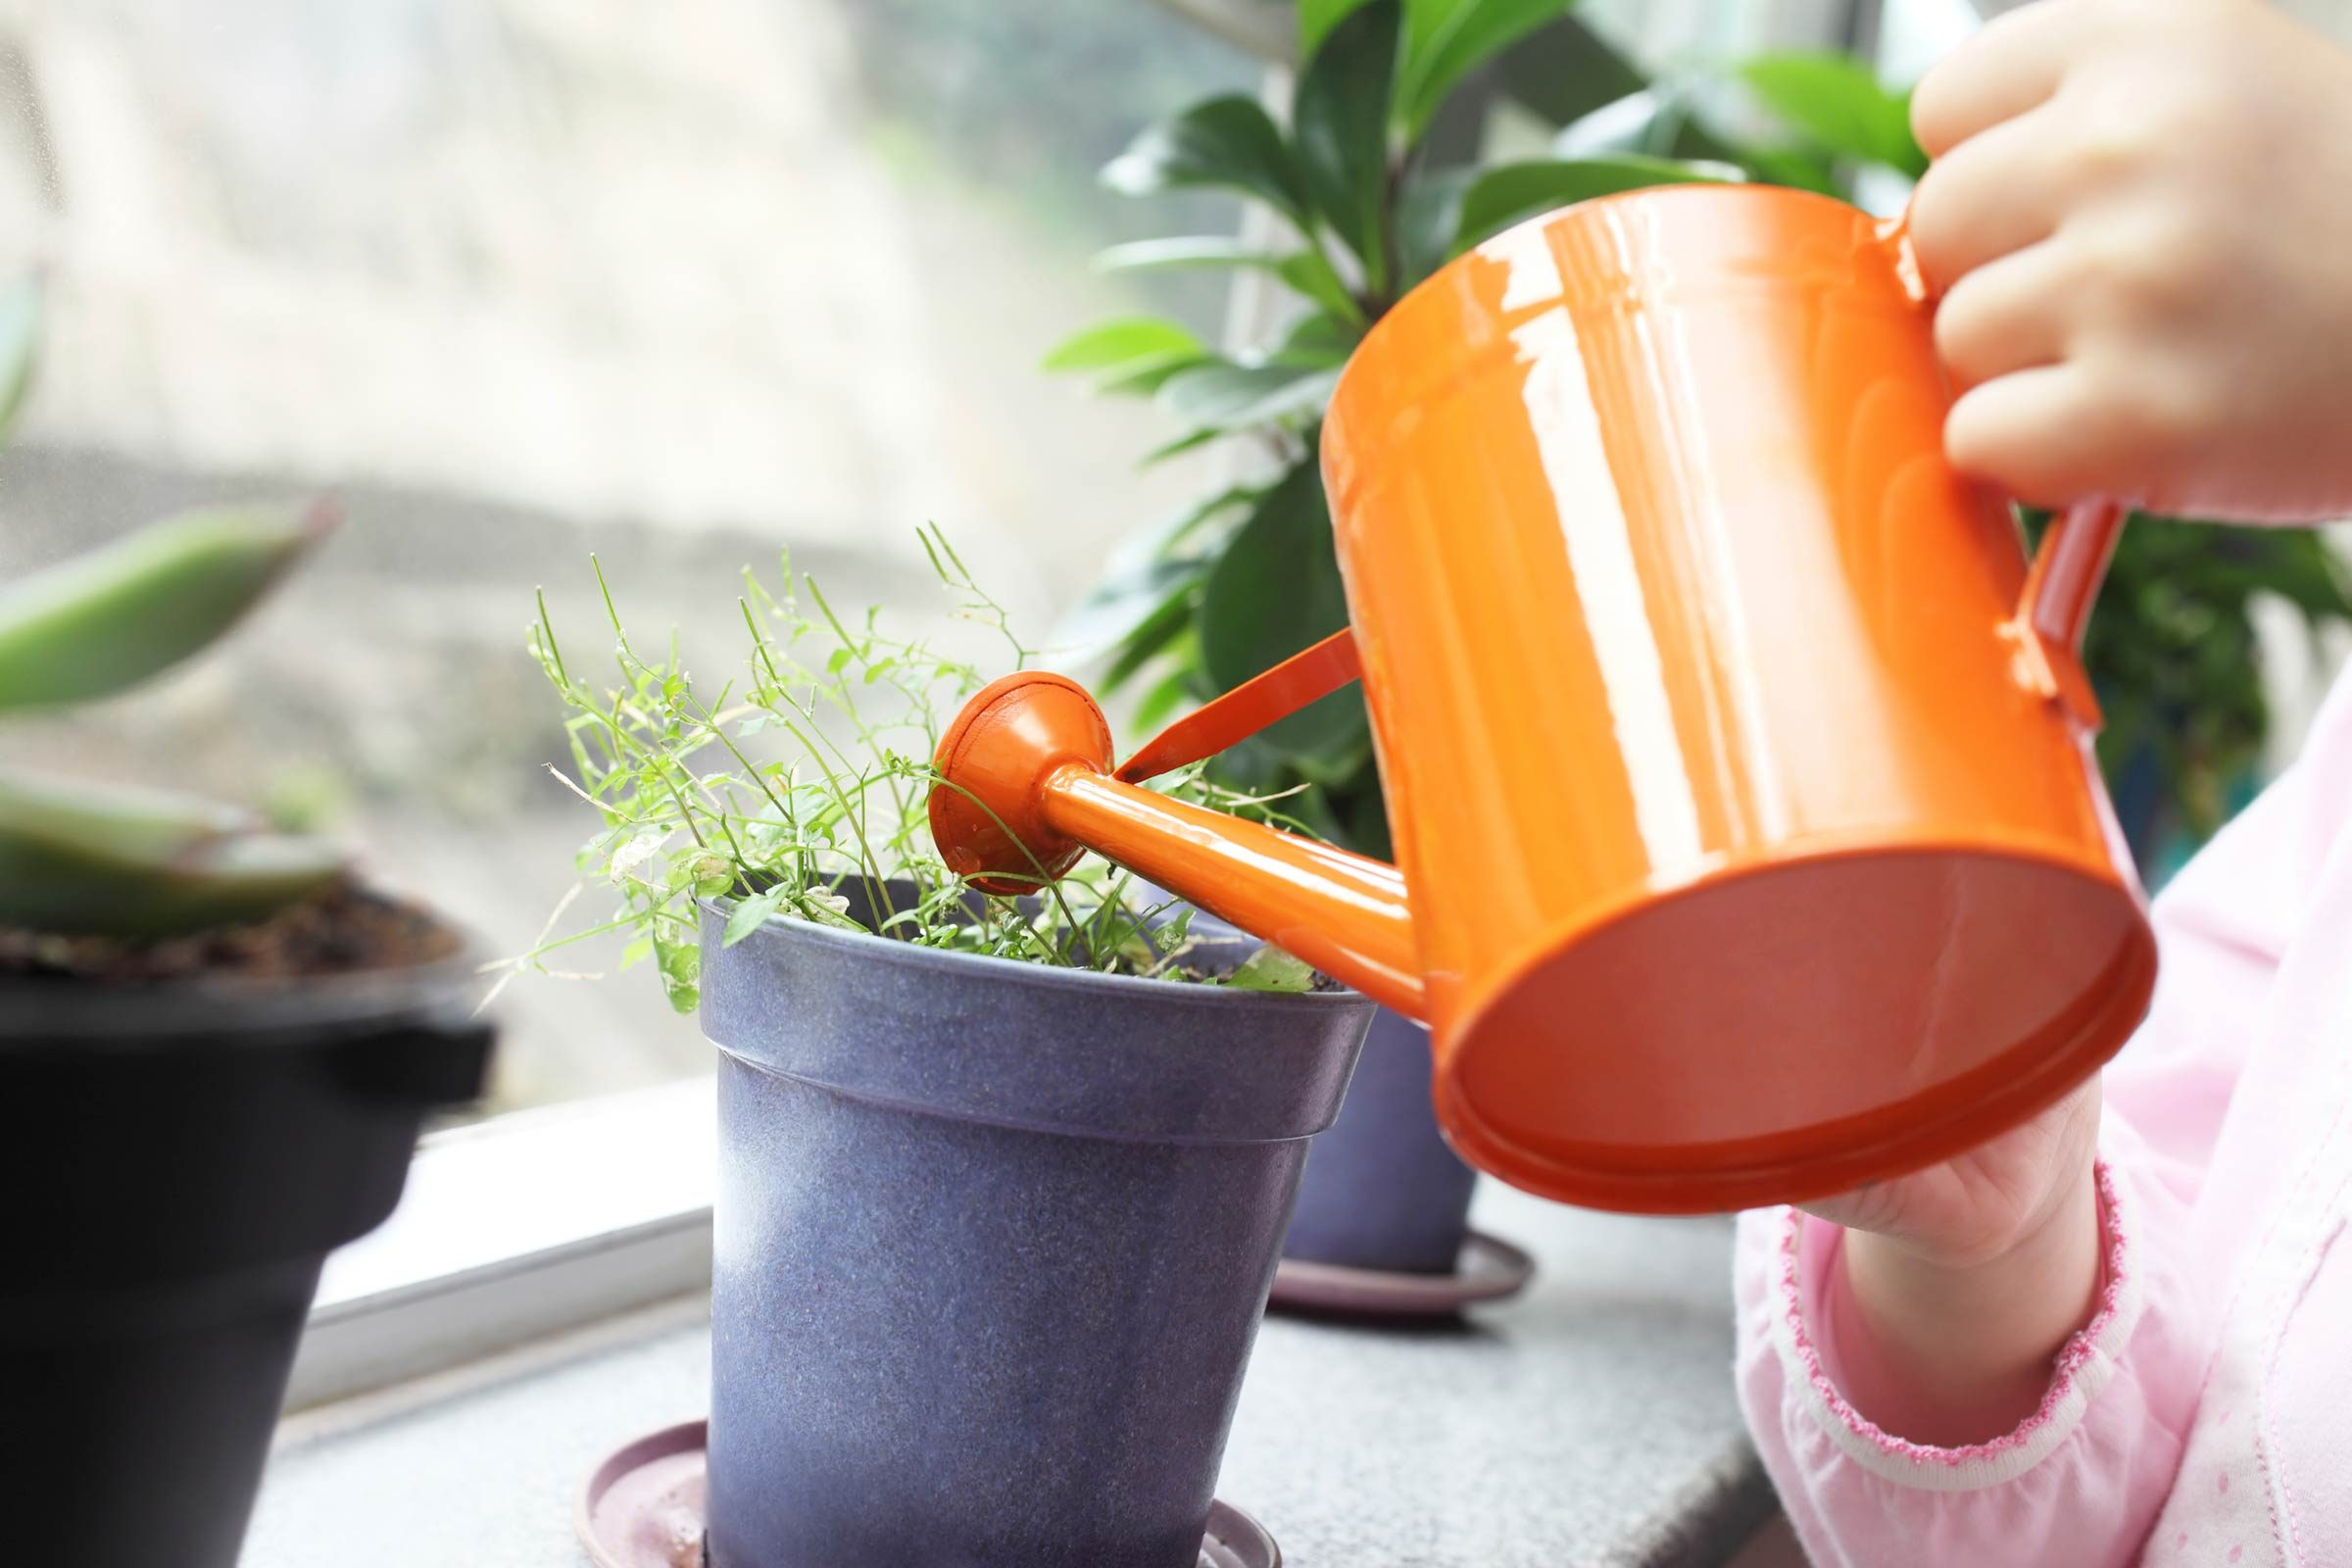 Growing Plants Indoors: 29 Tips for Houseplants | Reader's ... on plant tanks, plant water bags, plant protection bags, plant trees, hunting bags, plant seedlings, plant wall art, dog walking bags, plant pots bags, transplant trees woven bags, shopping bags, plant shrubs, plant growing bags, plant seeds bags, christmas tree removal bags, plant cutting bags, plant transport bags, plant propagation bags,